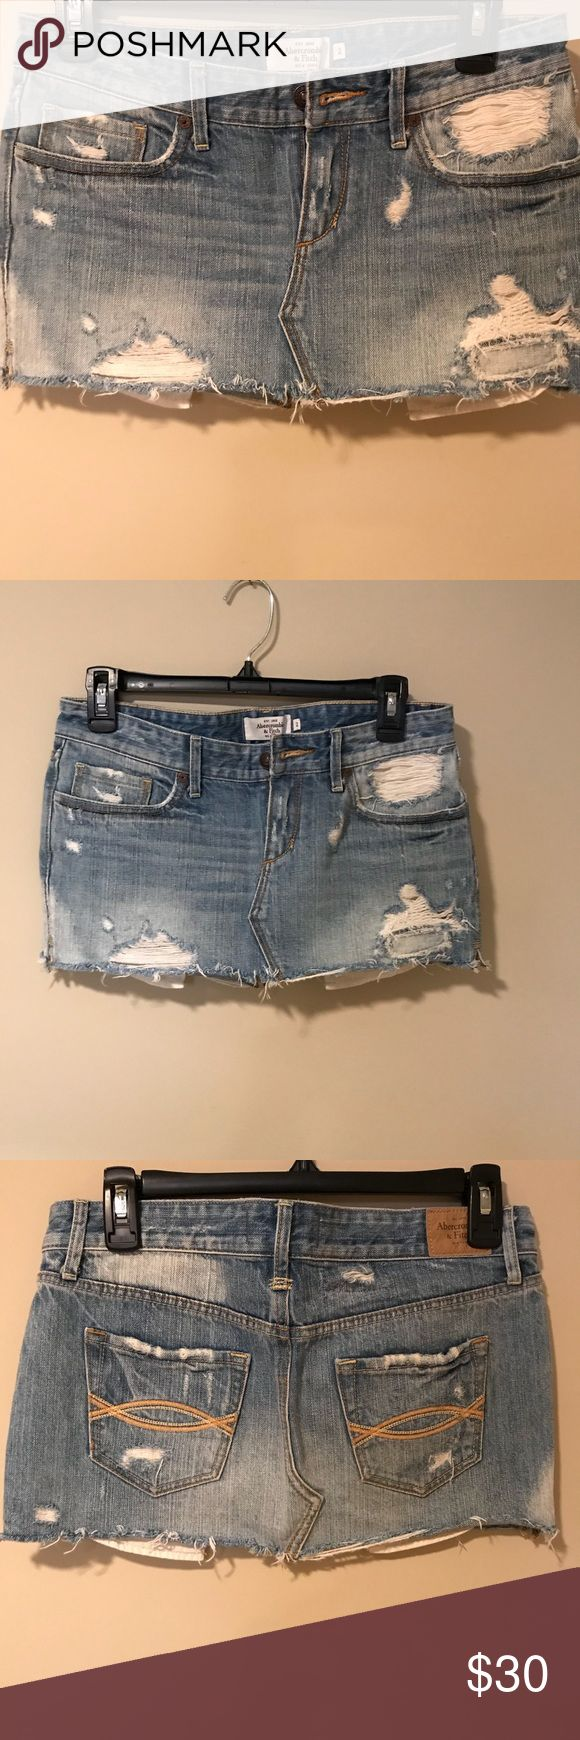 Abercrombie & Fitch Distressed Jean Skirt This skirt is like new.  Distressed is how it's made.  I probably wore it 3-4 times so there's no added wear or damage.  Size 2. Abercrombie & Fitch Skirts Mini